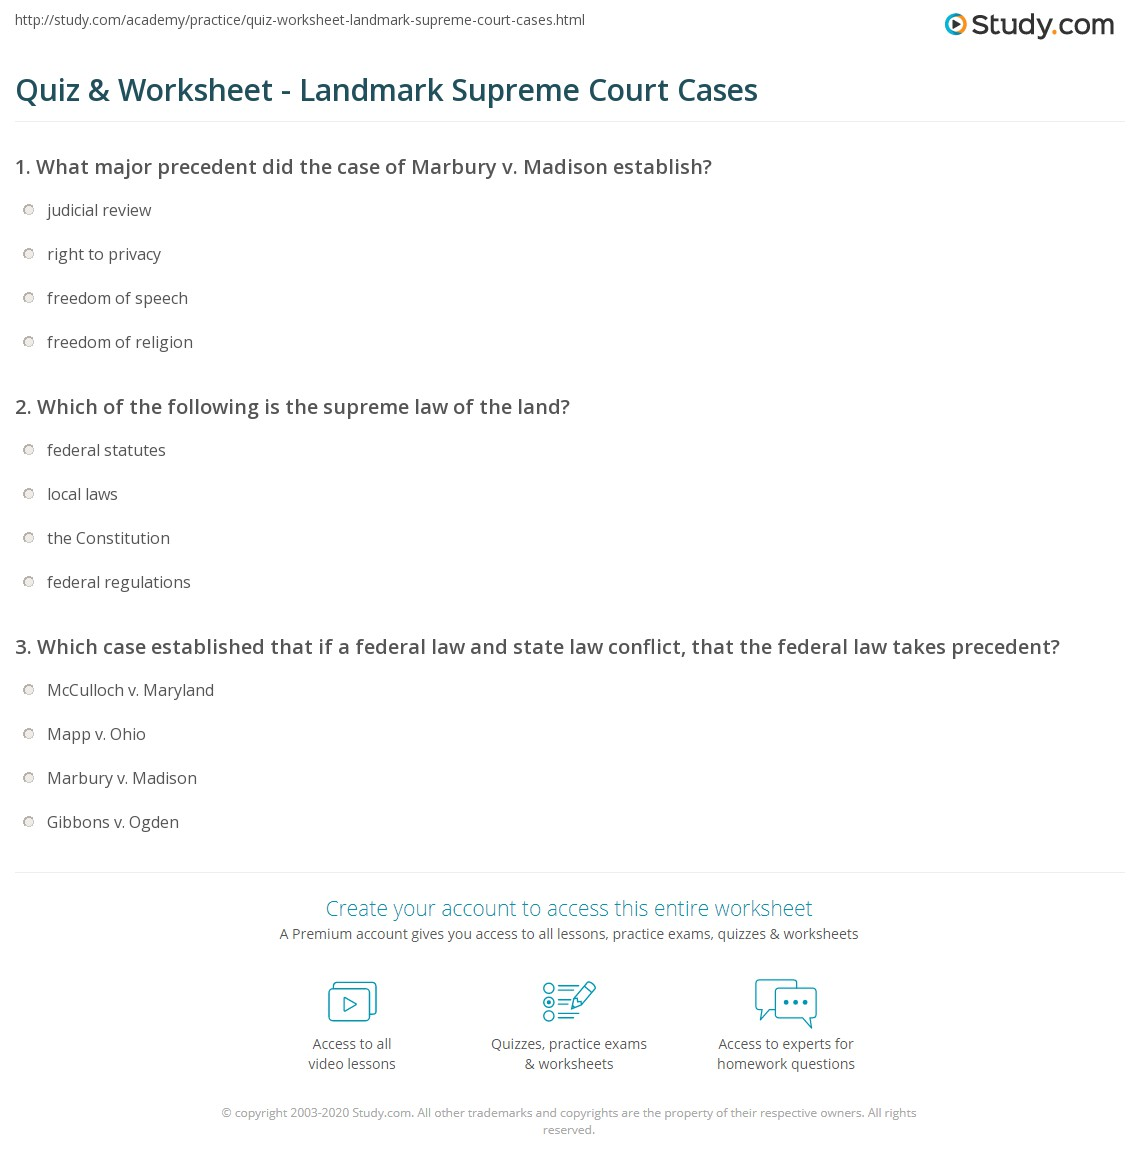 Worksheets Landmark Supreme Court Cases Worksheet quiz worksheet landmark supreme court cases study com print based on constitutional articles worksheet